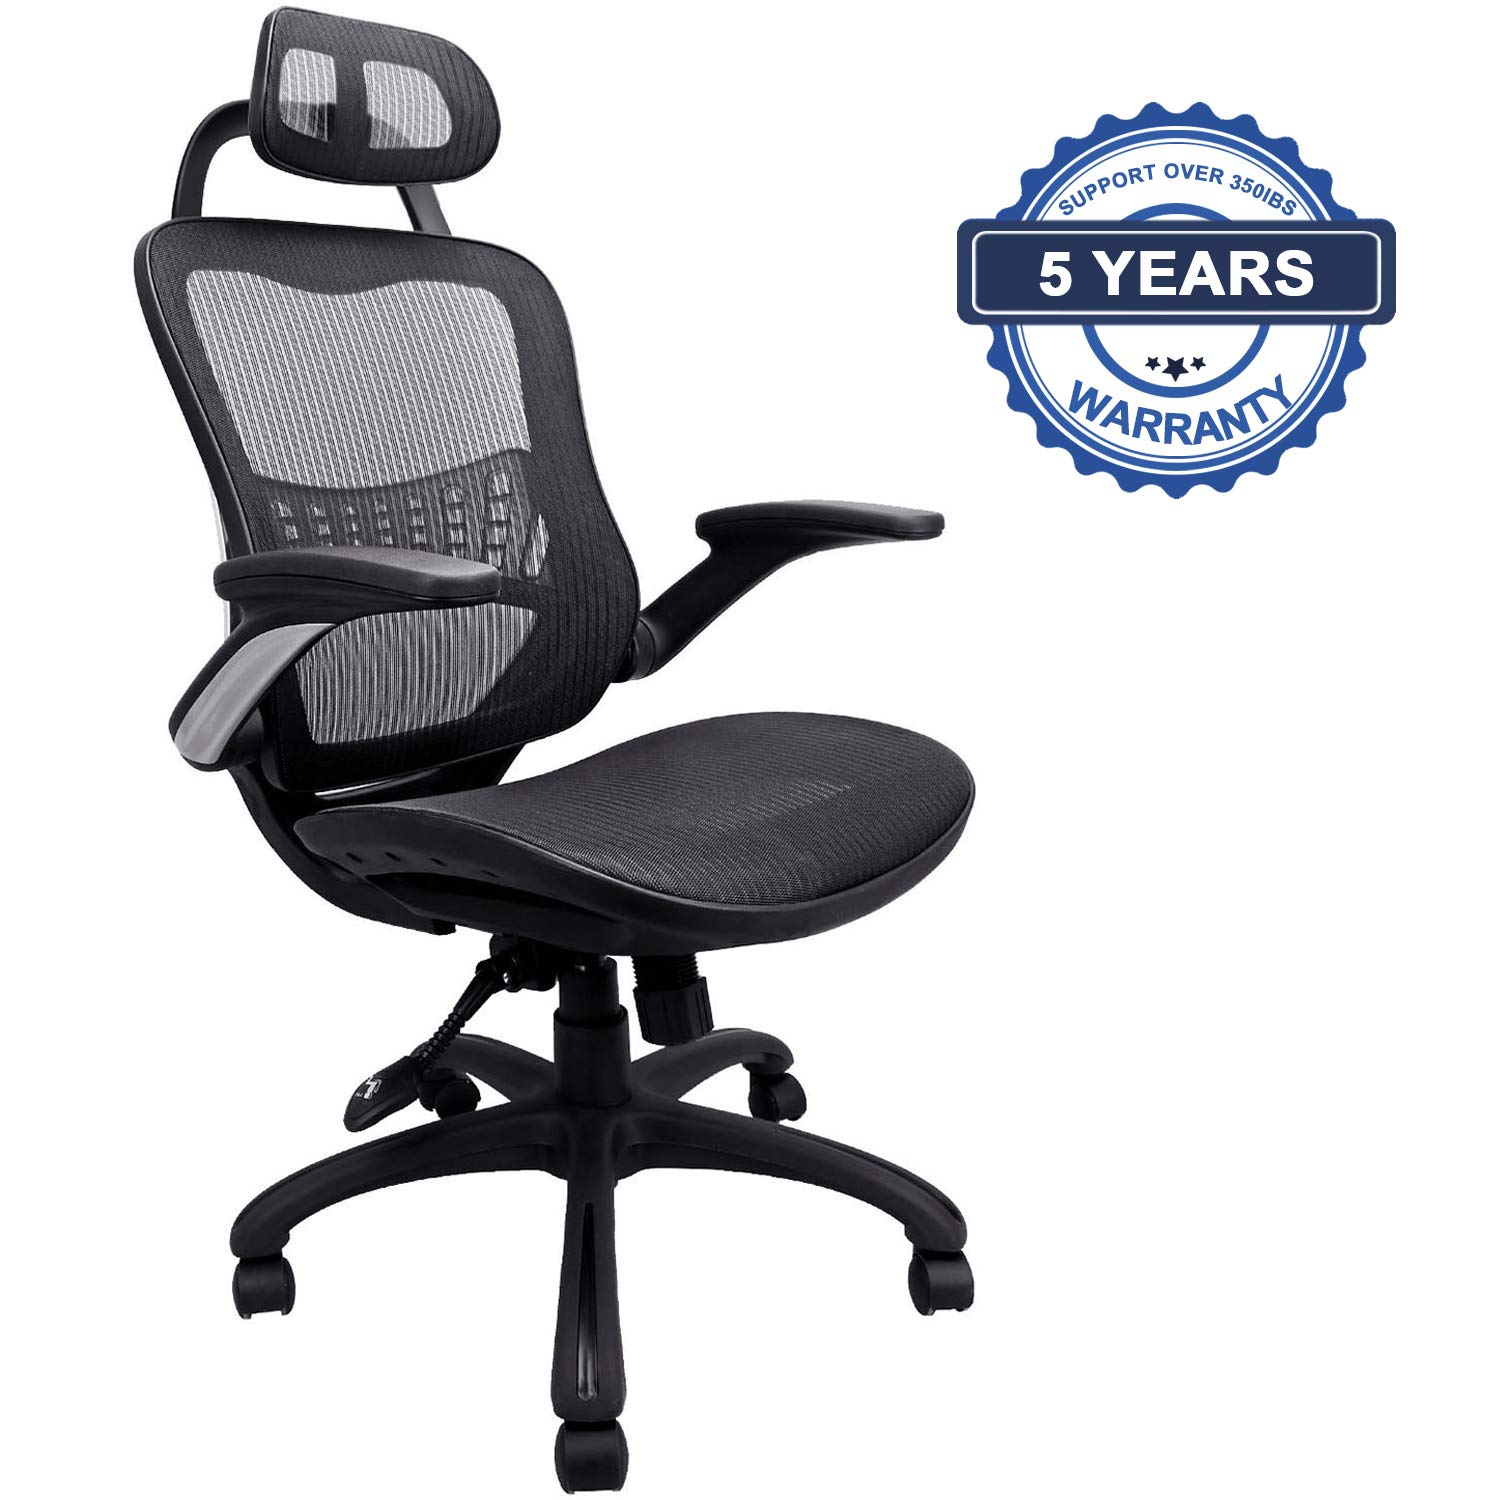 Ergonomic Office Chair, Weight Capacity Over 300Ibs Passed BIFMA,Breathable High Back Mesh Office Chairs,Adjustable Headrest,Backrest and Flip-up Armrests,Executive Office Chair for Height Under 5'11 by Komene (Image #1)